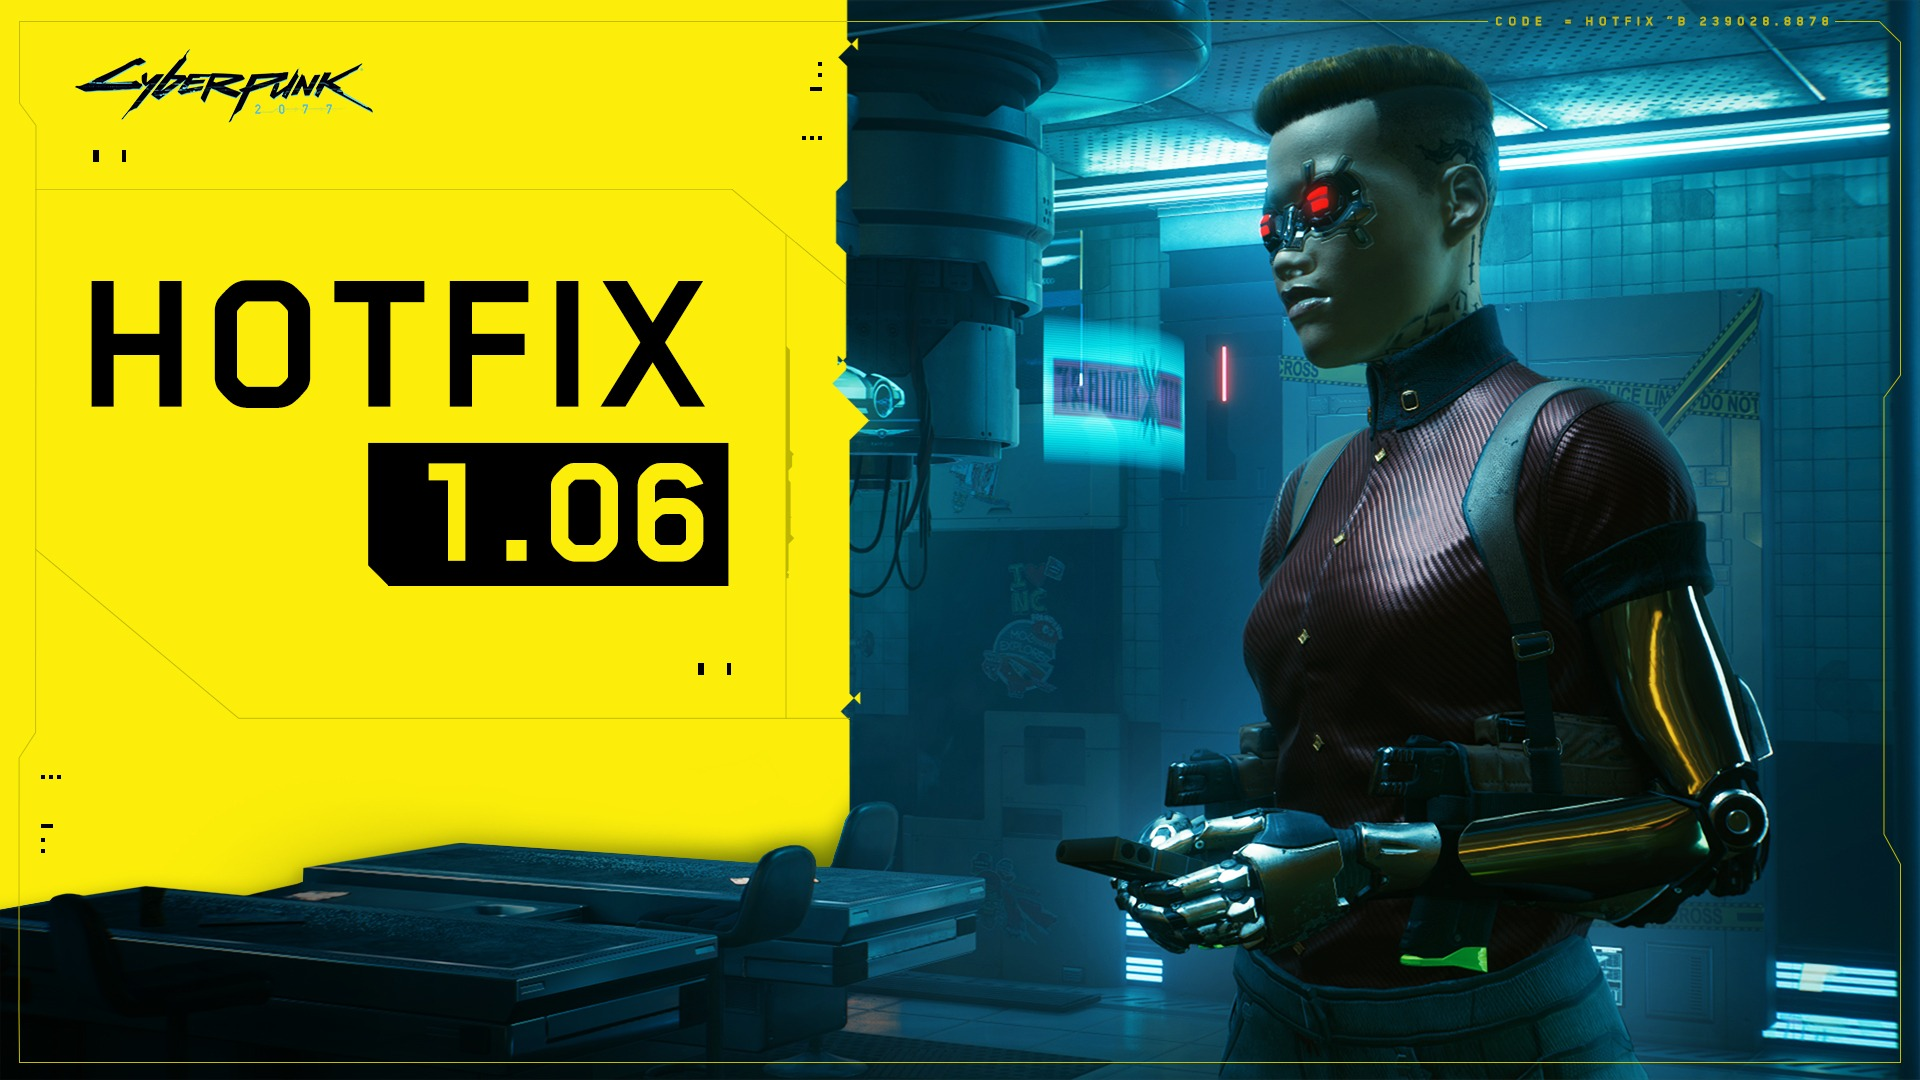 Cyberpunk 2077 Hotfix 1.06 is now available on both PC and Consoles